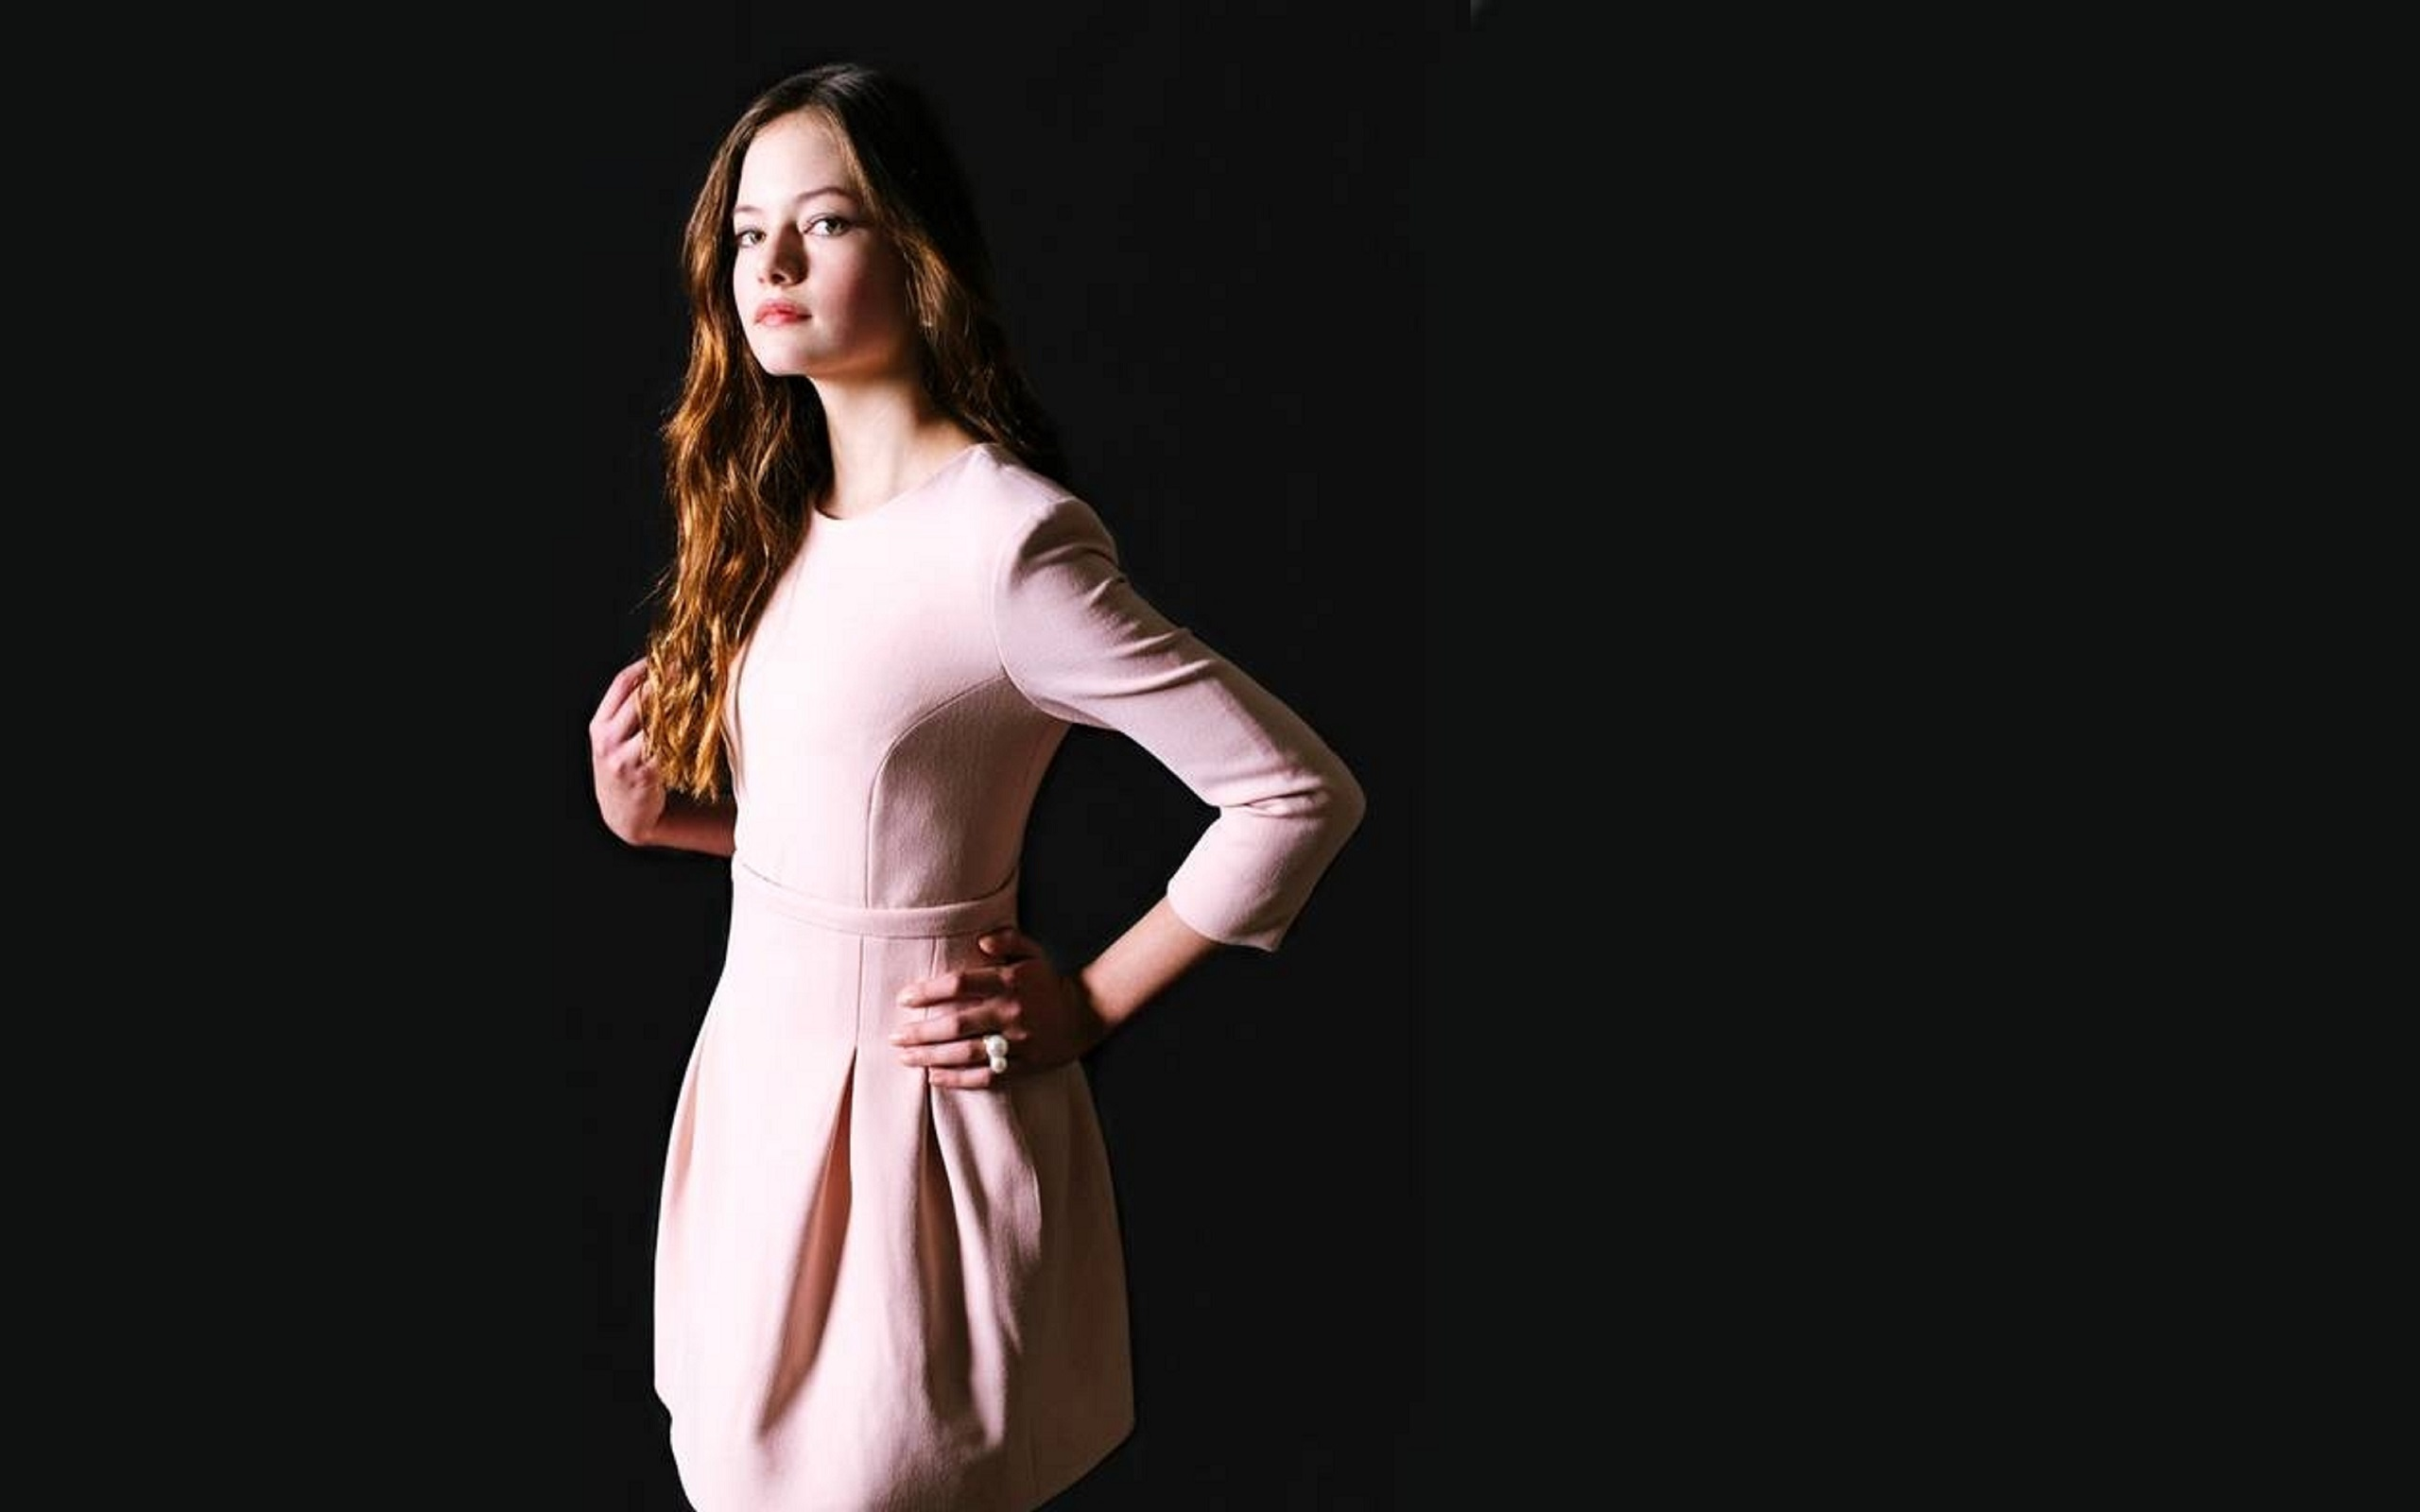 Actress Mackenzie Foy Beautiful Photoshoot Wallpaper HD 2560x1600